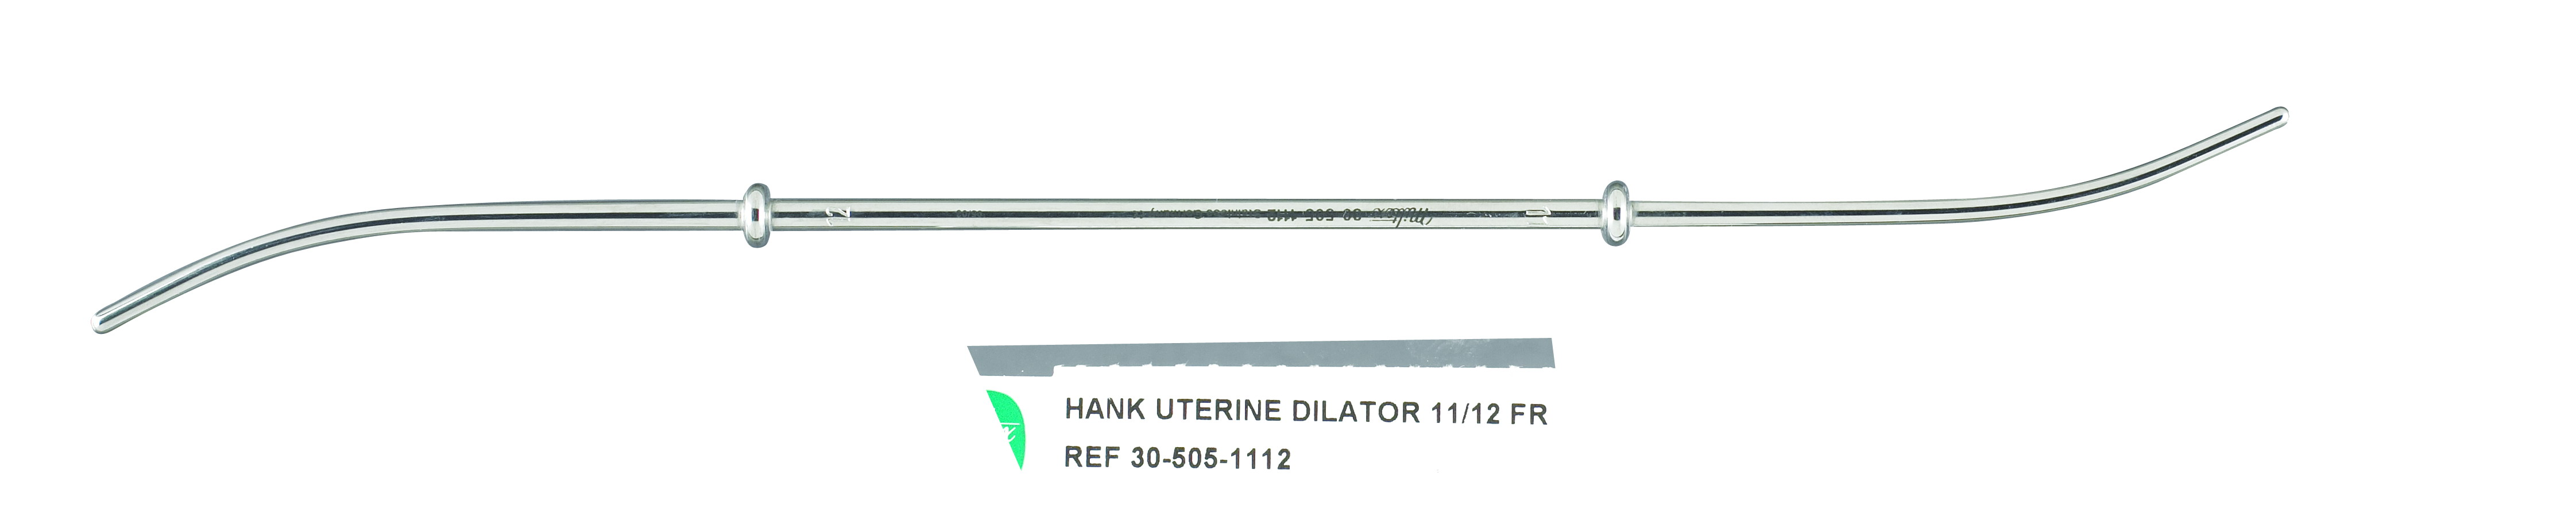 hank-uterine-dilators-10-1-2-267-cm-double-end-11-12-fr36-4-mm-30-505-1112-miltex.jpg